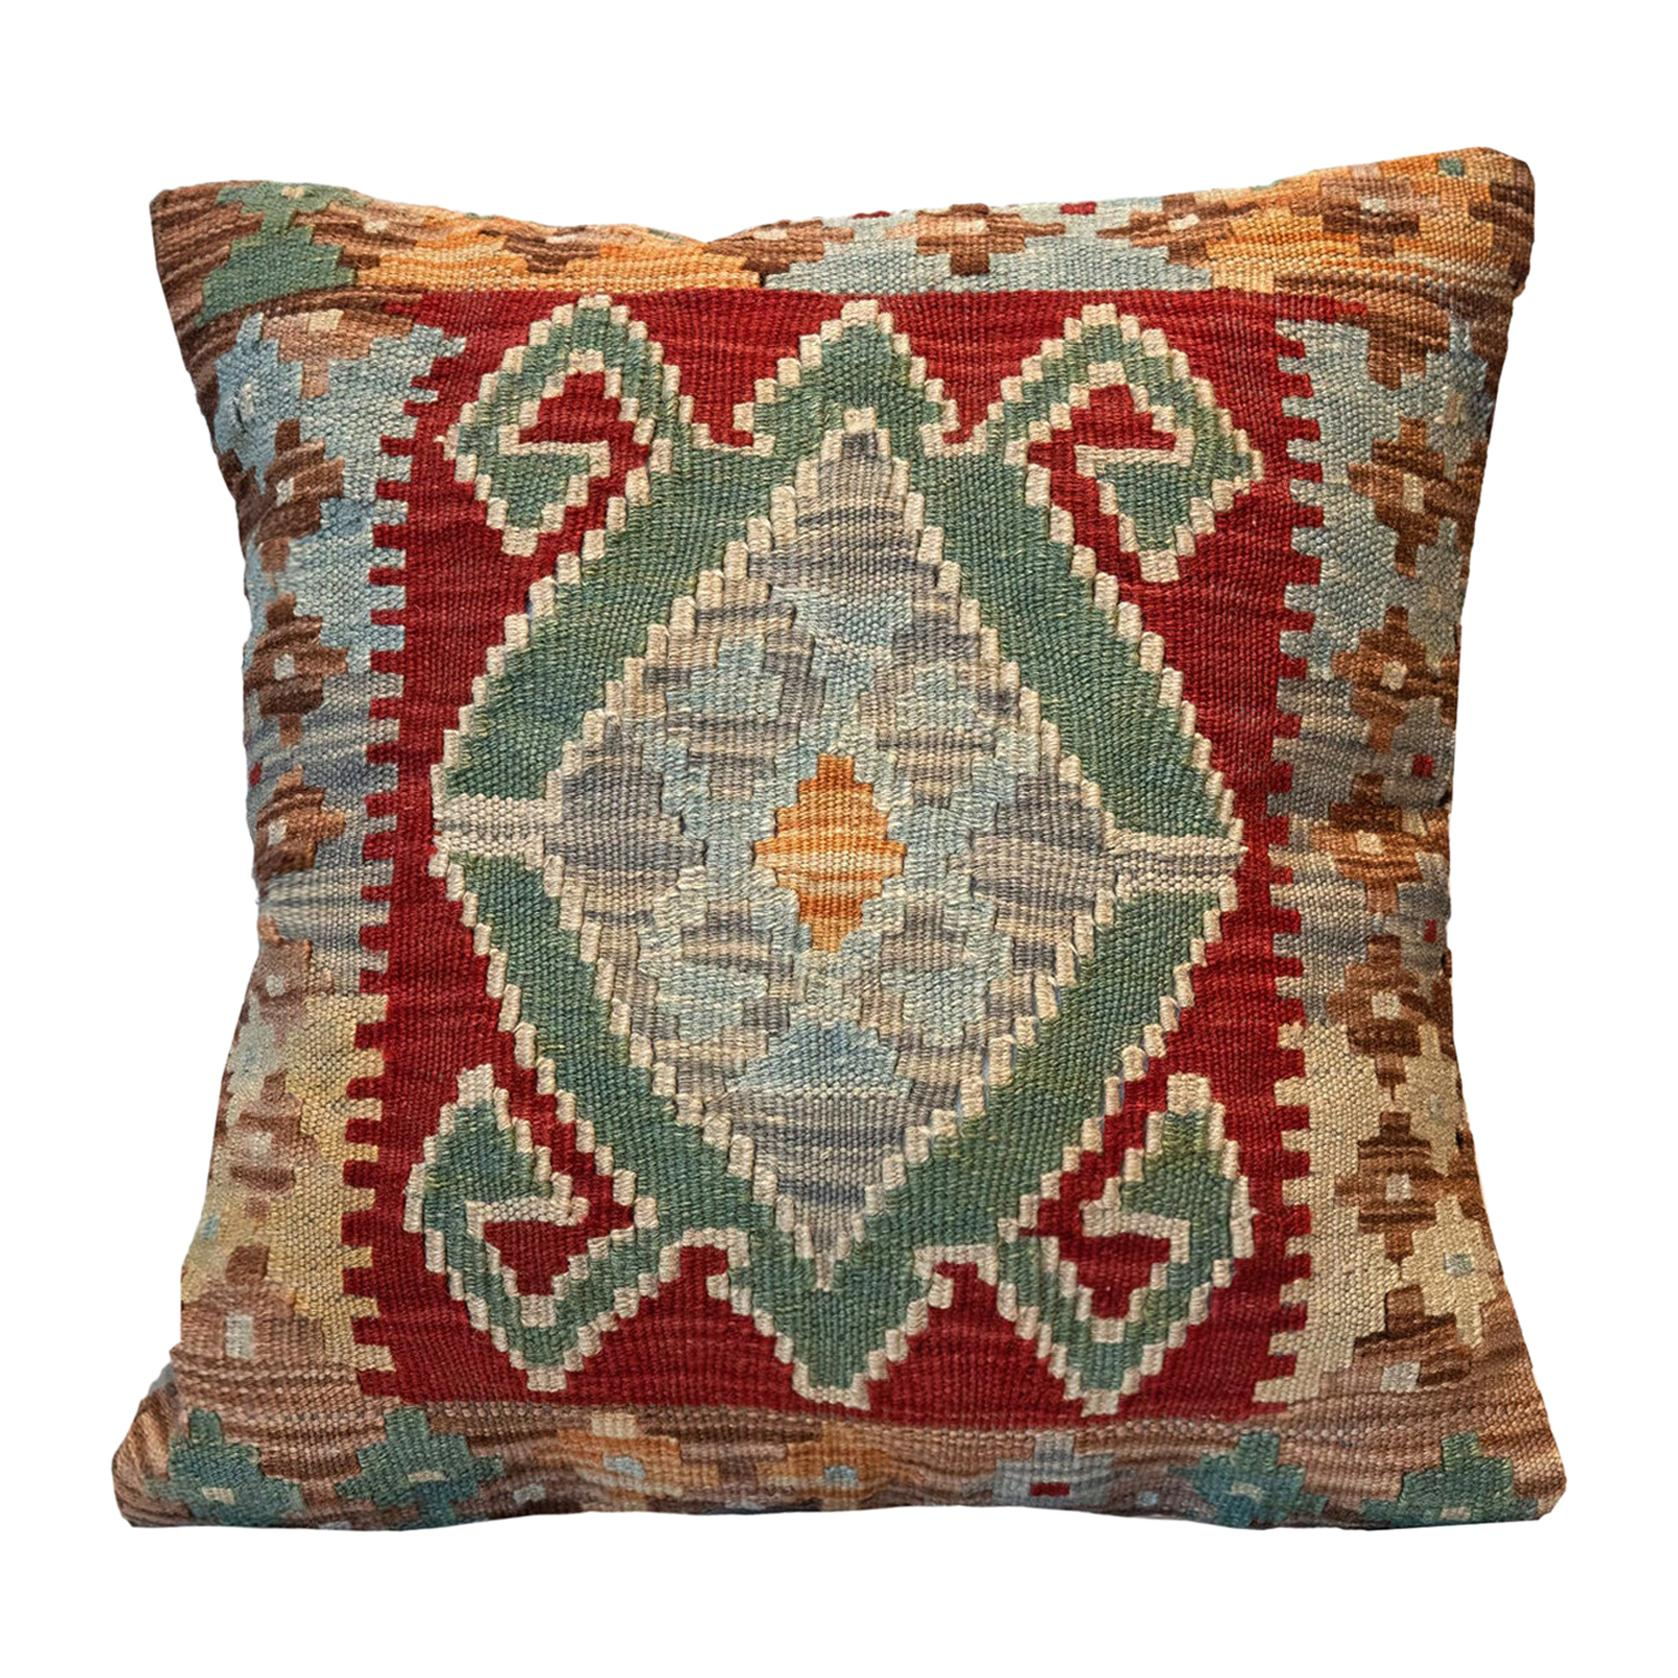 Tribal Kilim Cushion Cover, Handwoven Pillow Cover Geometric Wool